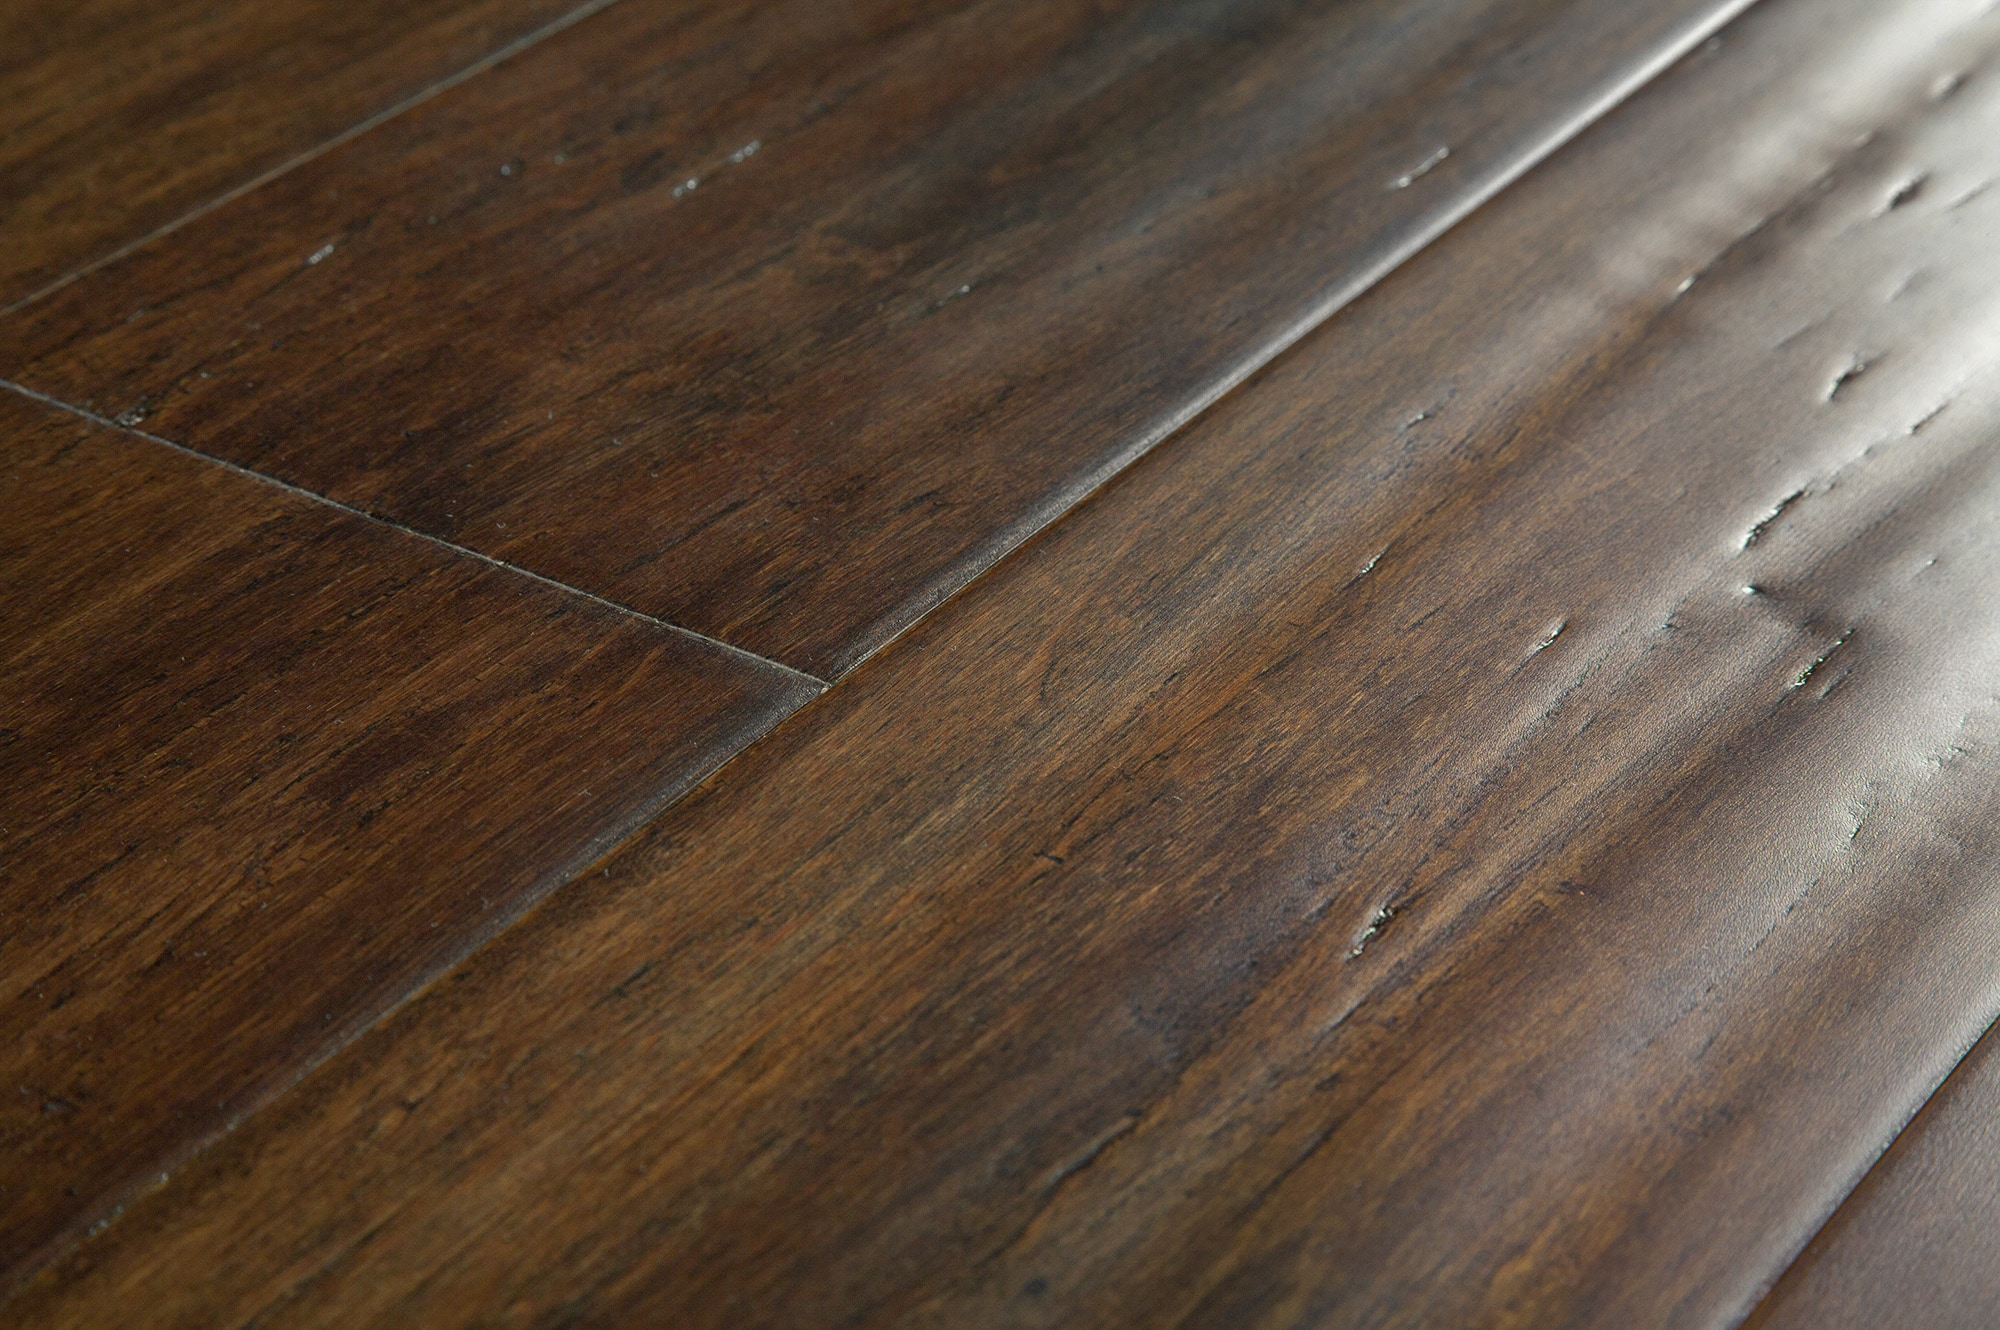 Yanchi 14mm Wide-Plank T&G Solid Strand Woven Bamboo Flooring Distressed  Fairmont Brown